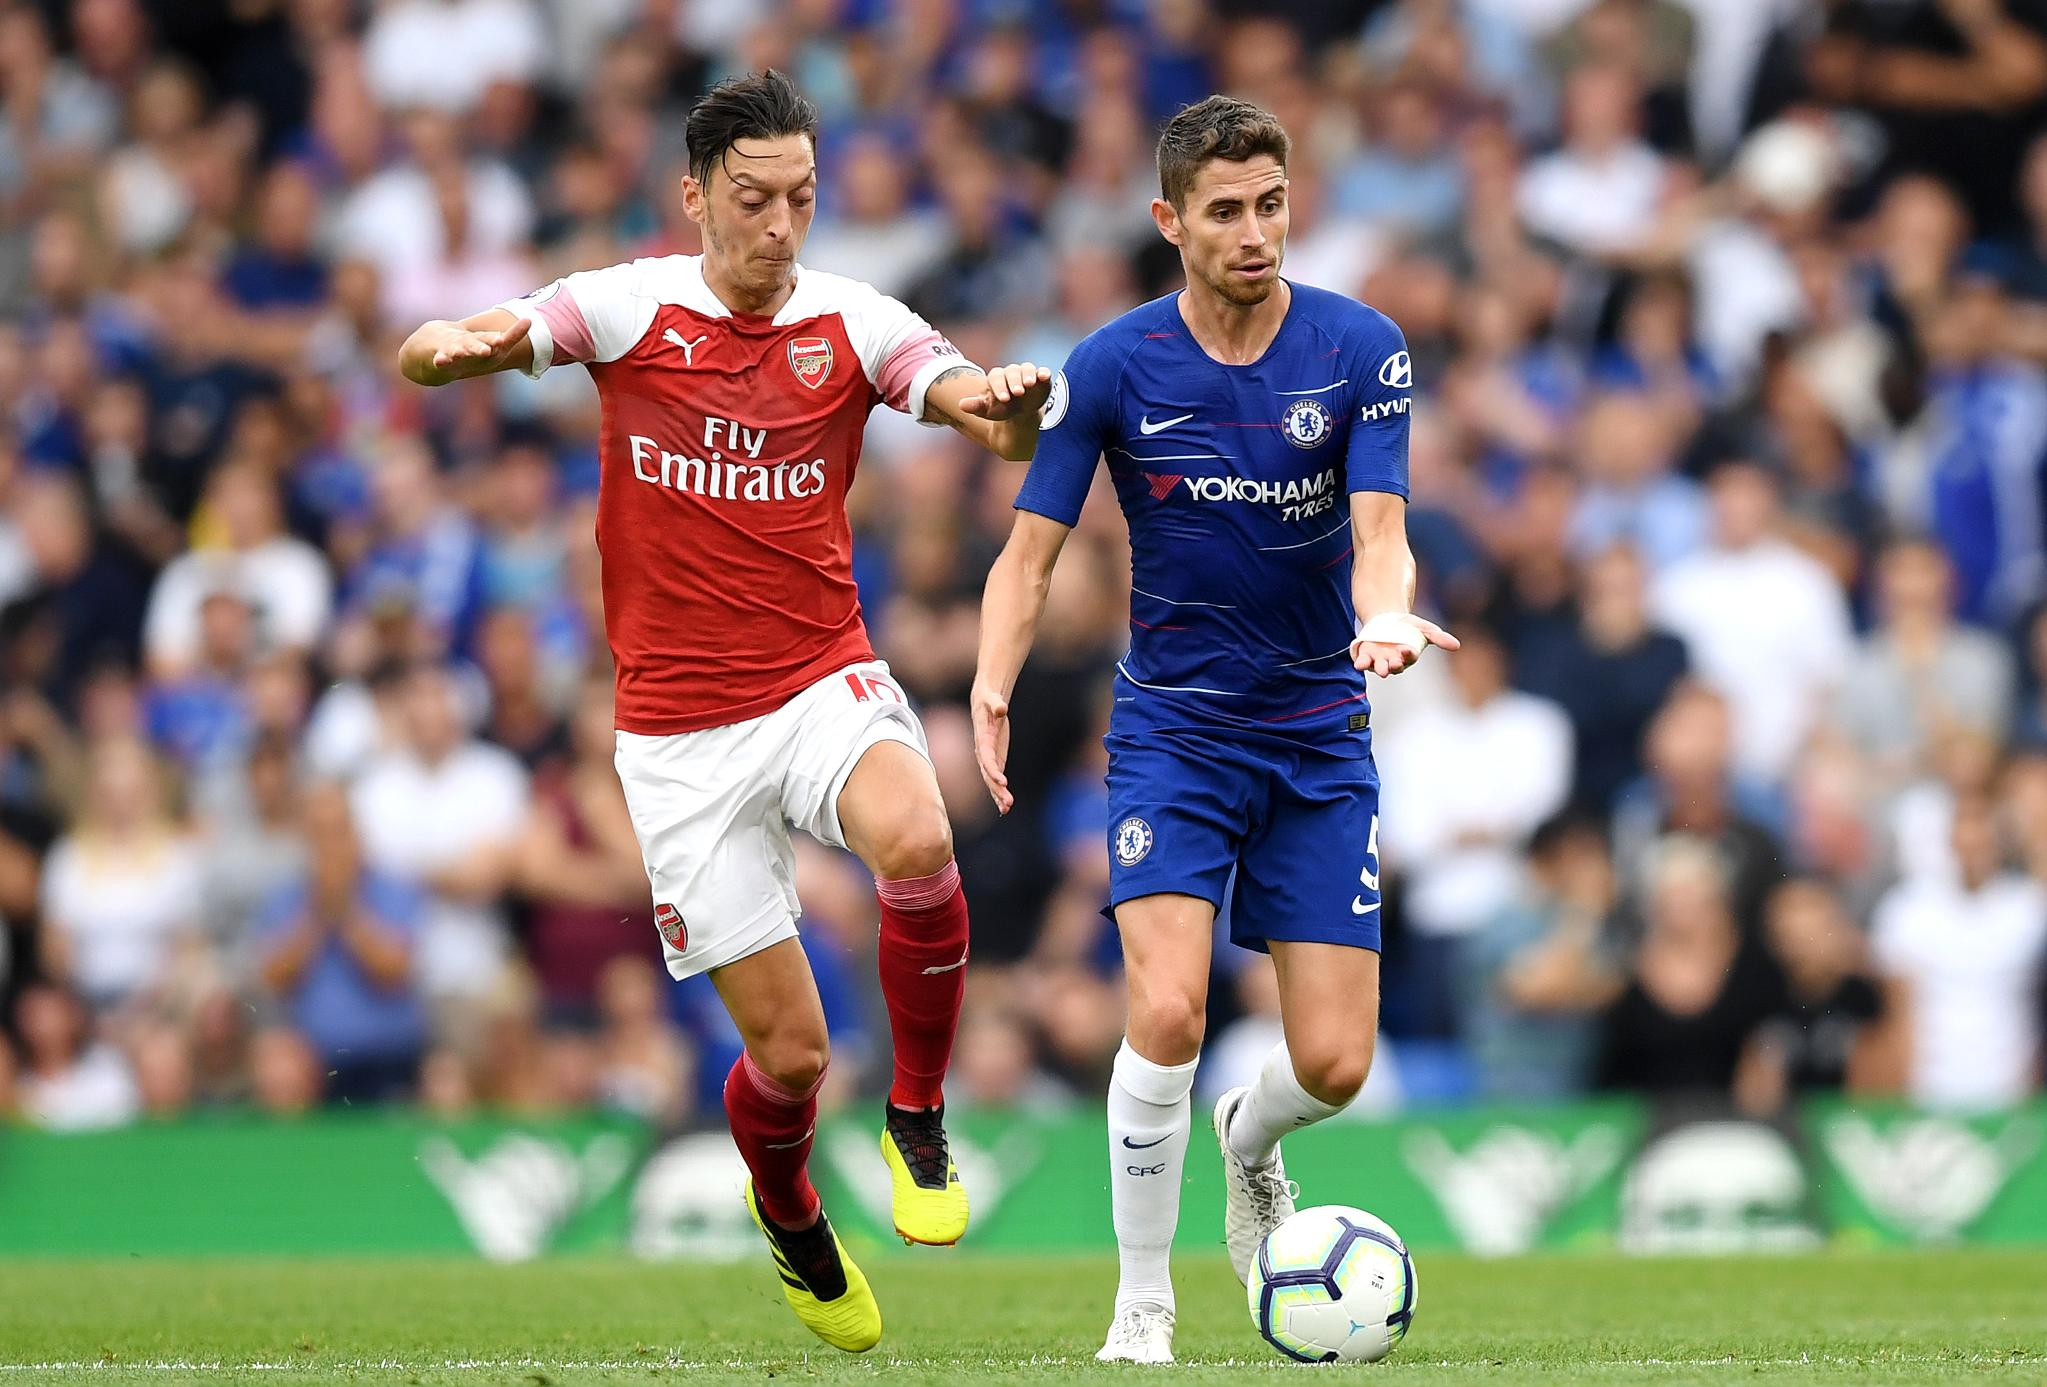 45 minutes of football you don't want to miss  #CHEARS second half at Matchday Live ➡️ https://t.co/LkXCktofVq https://t.co/3nq1MkcDc9